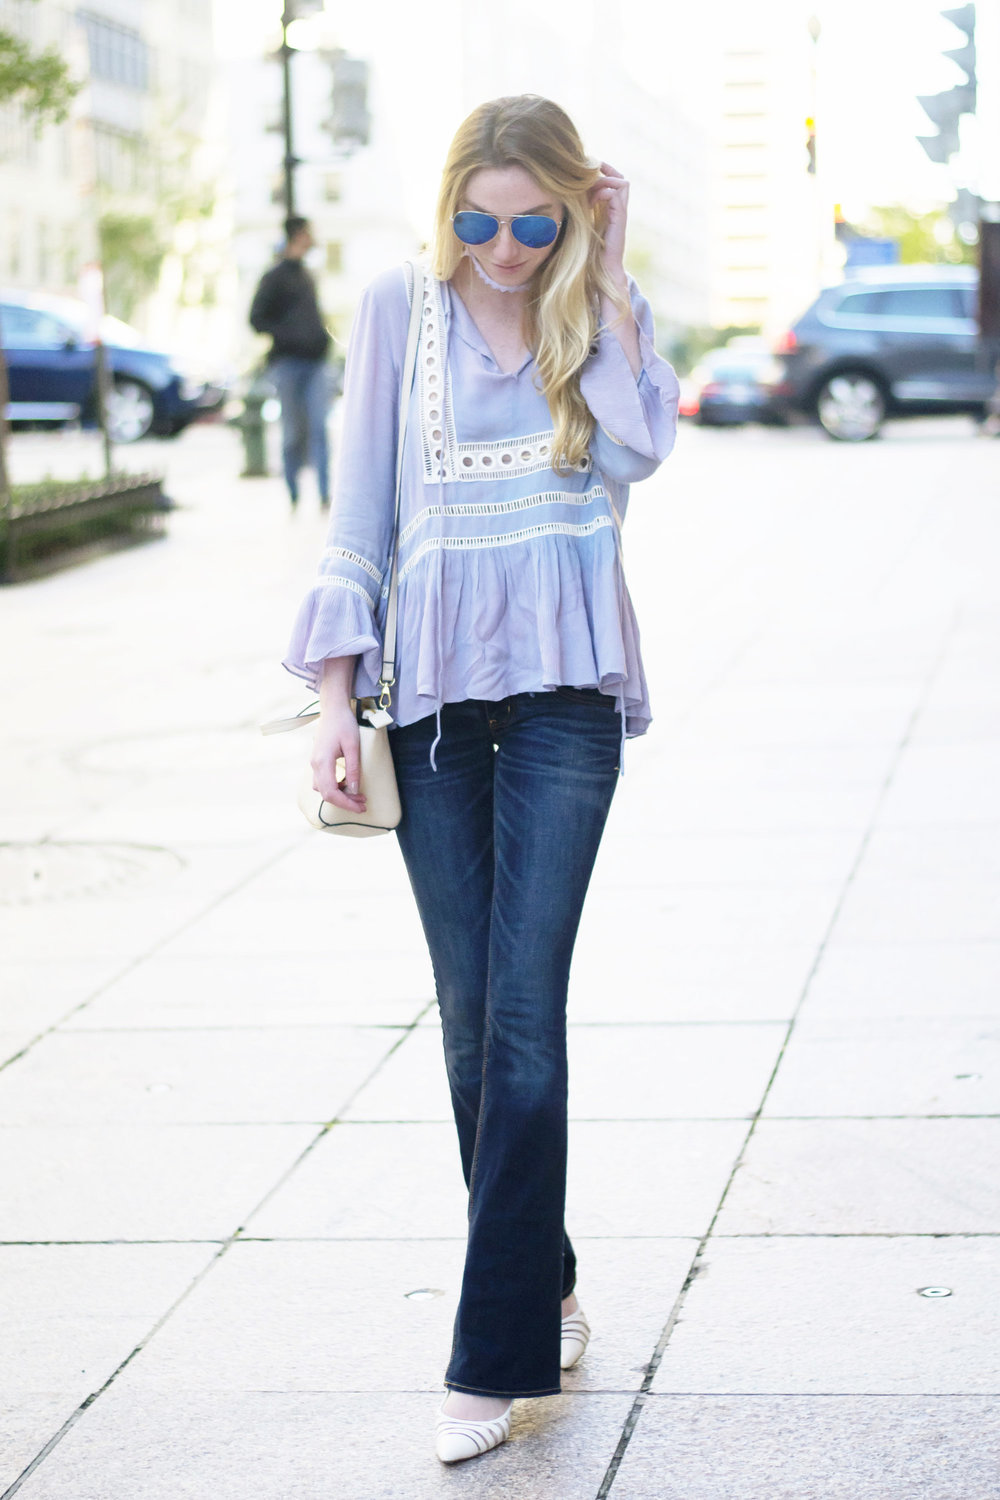 Blue White Boho Top (via Chic Now)